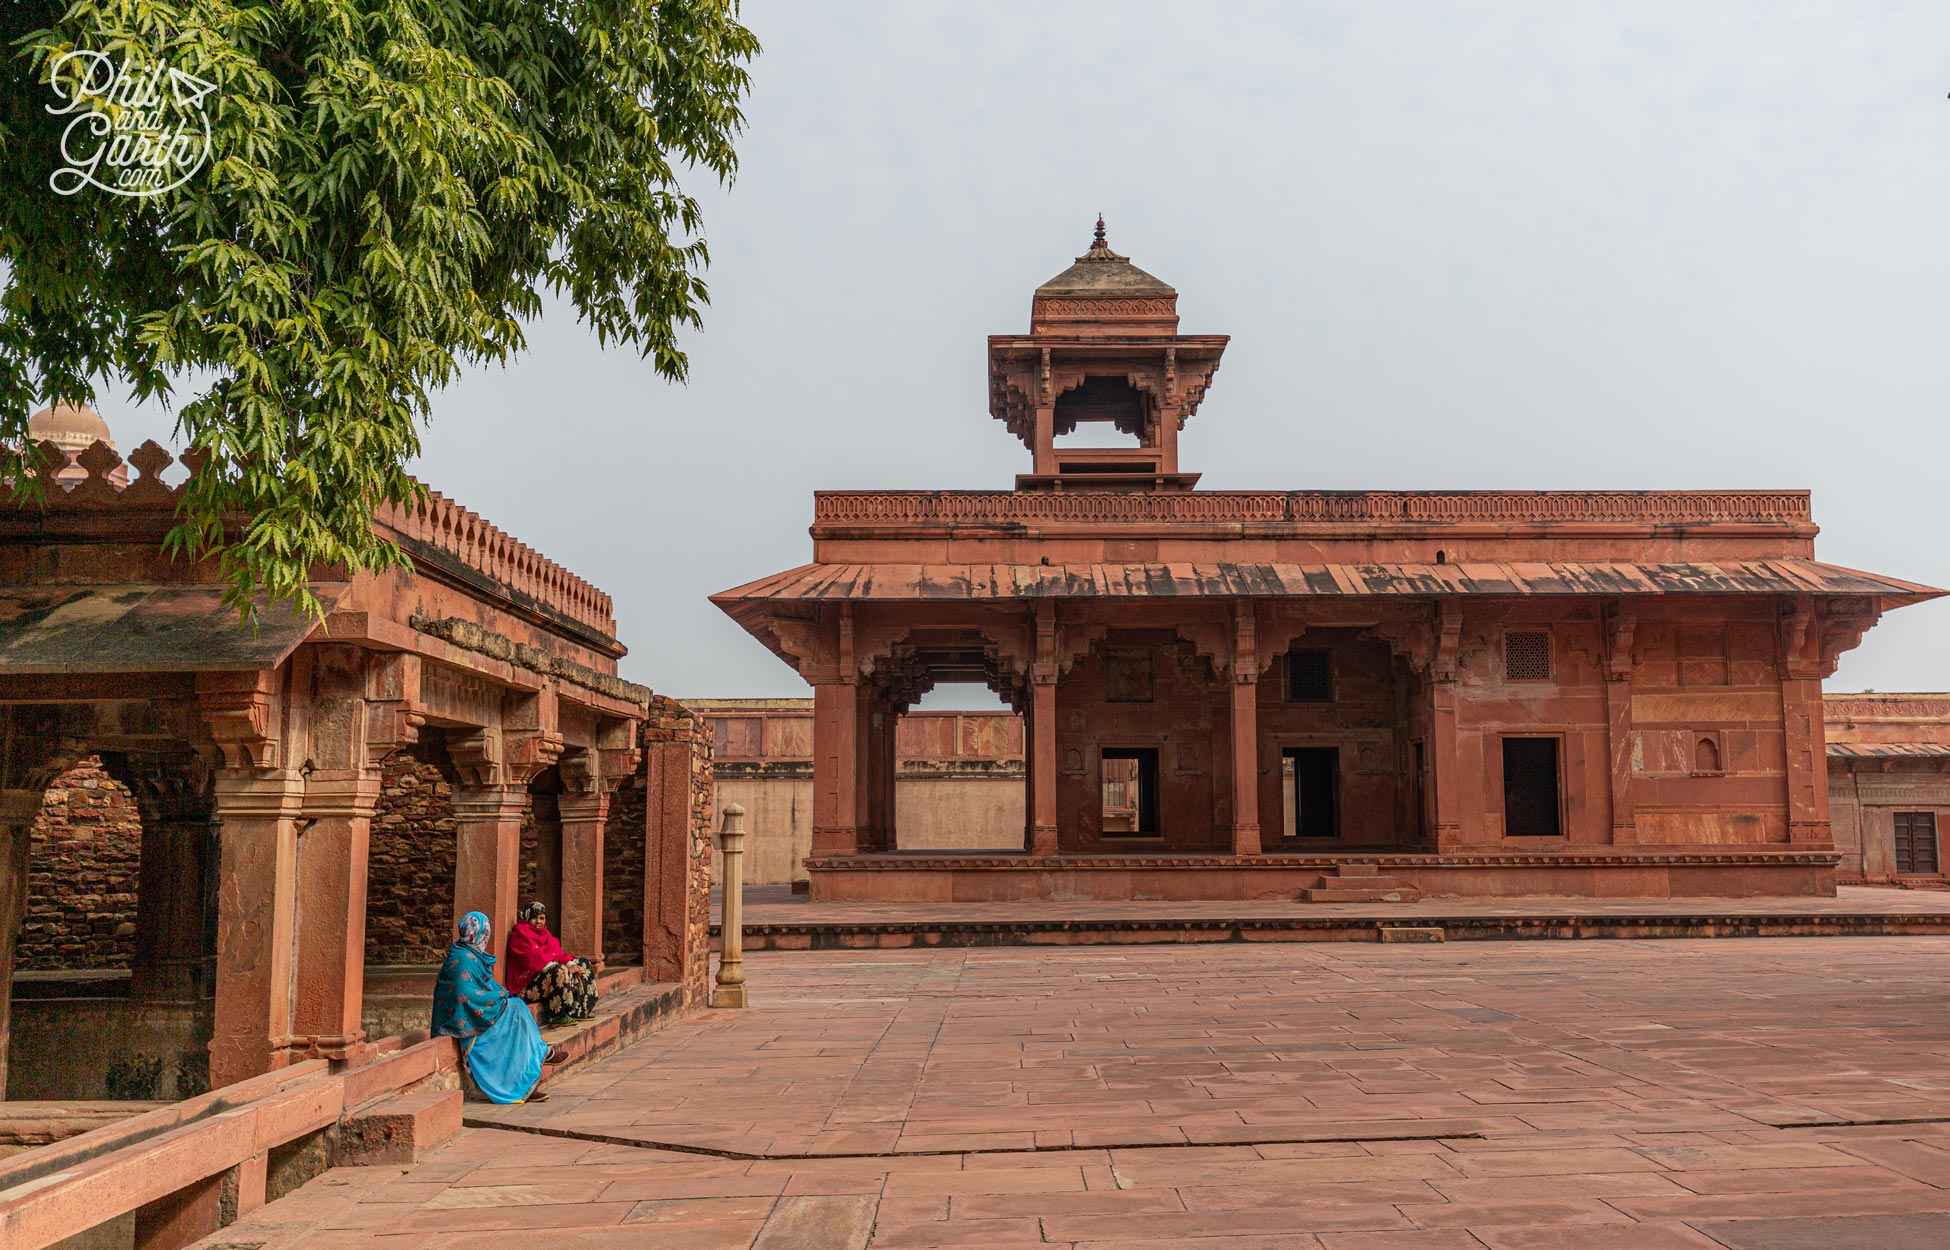 This ancient city is filled with ornate palaces, meeting halls and mosques